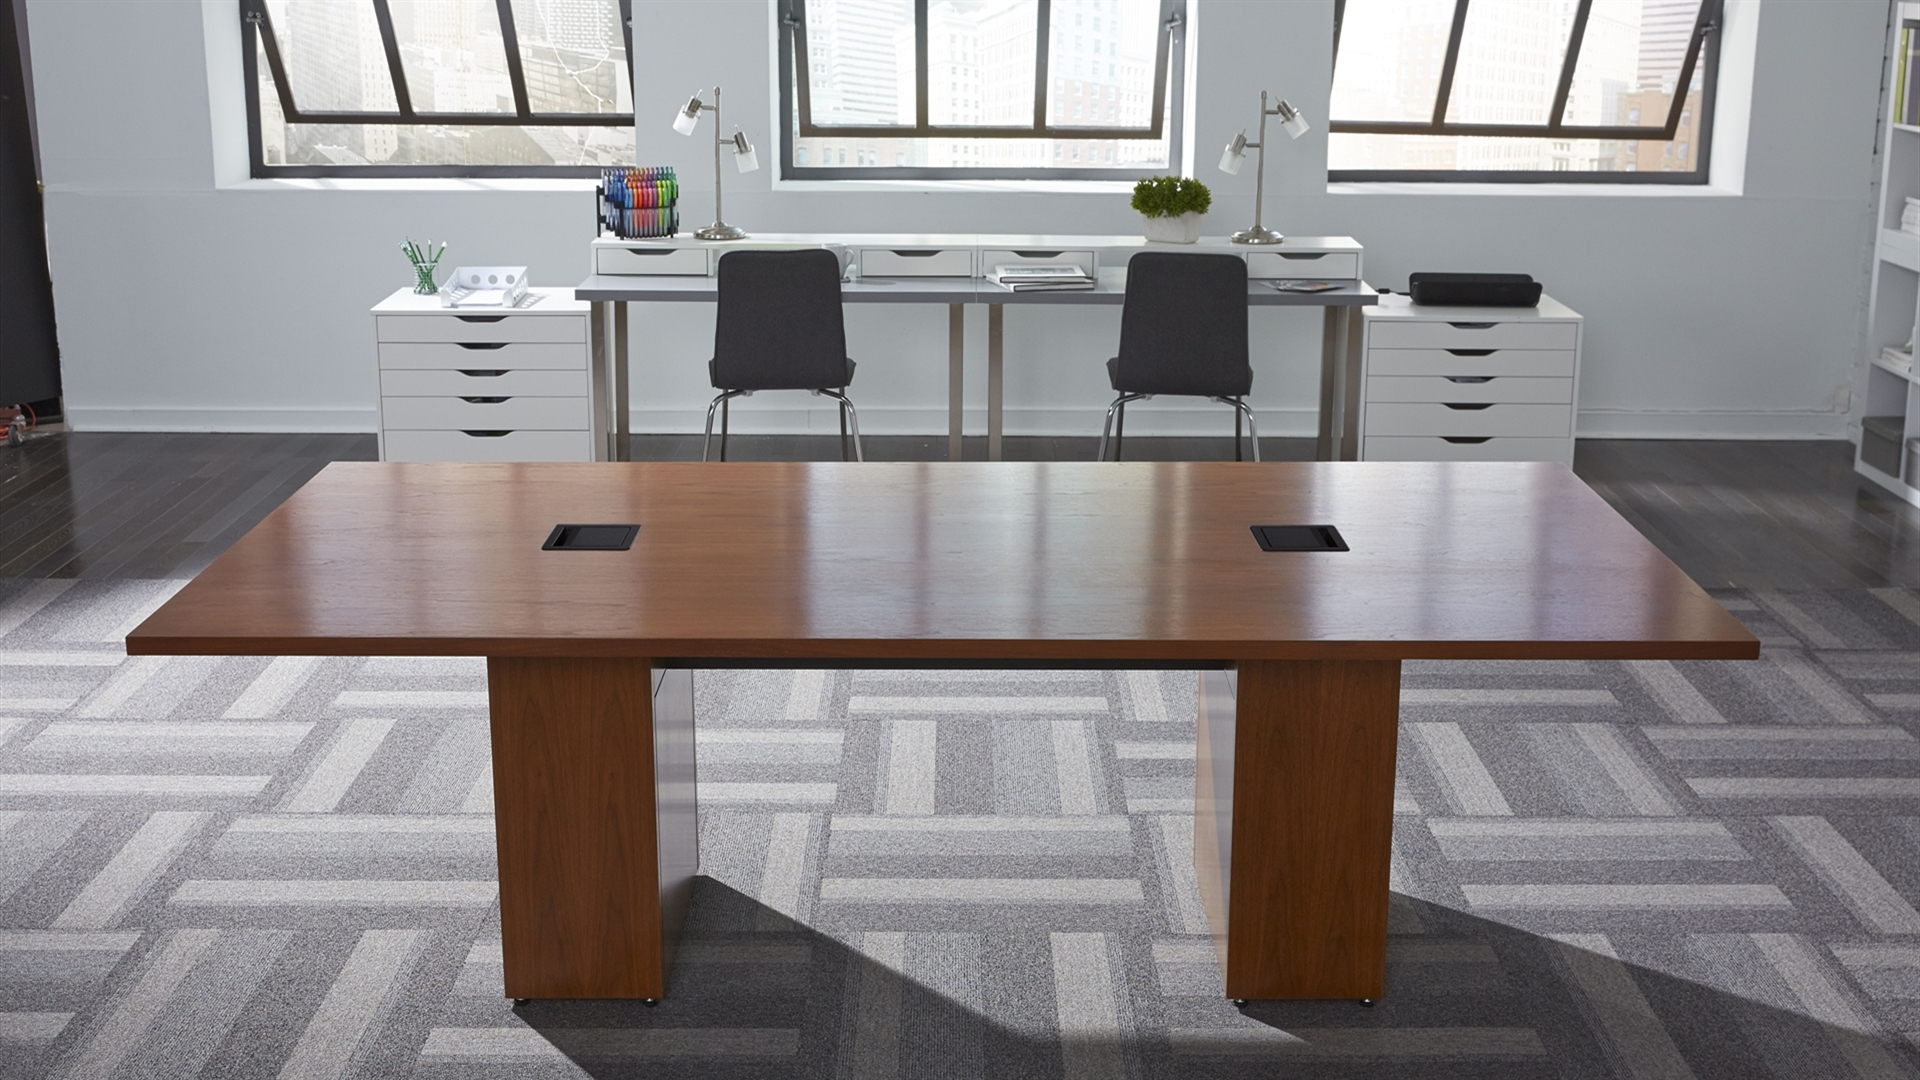 T Conference Table Connectivity - Conference table connectivity